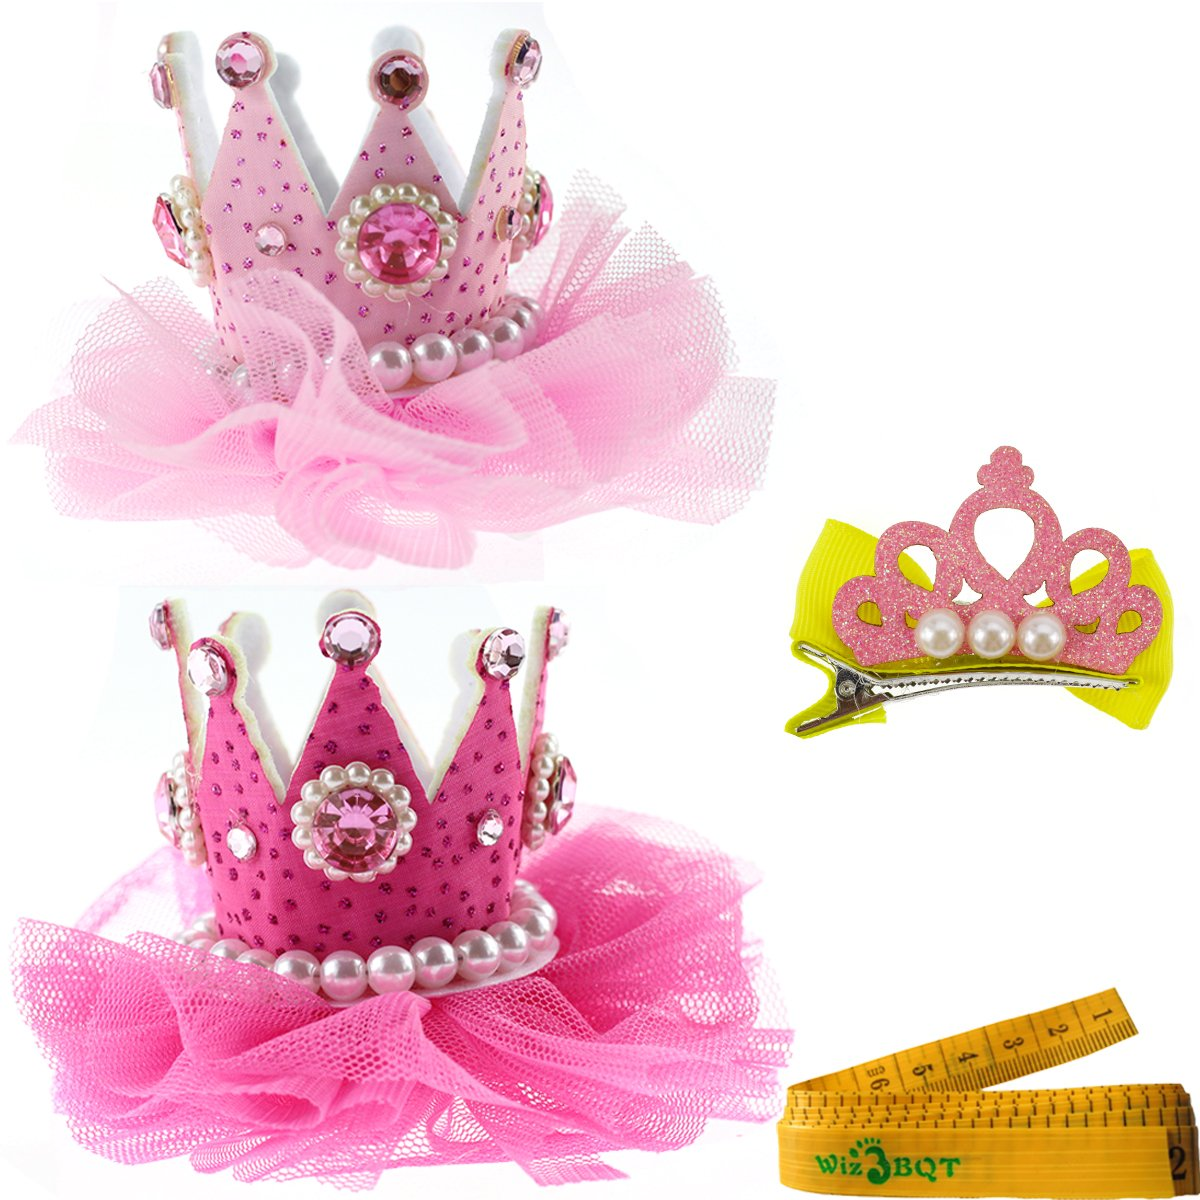 2 Pcs Adorable Cute Cat Dog Pet Birthday Party Crown Shaped Lace Hair Clips and 1 Pcs Crown Shaped Clip for Kitten Puppy Small Dogs Cats Pets (B)